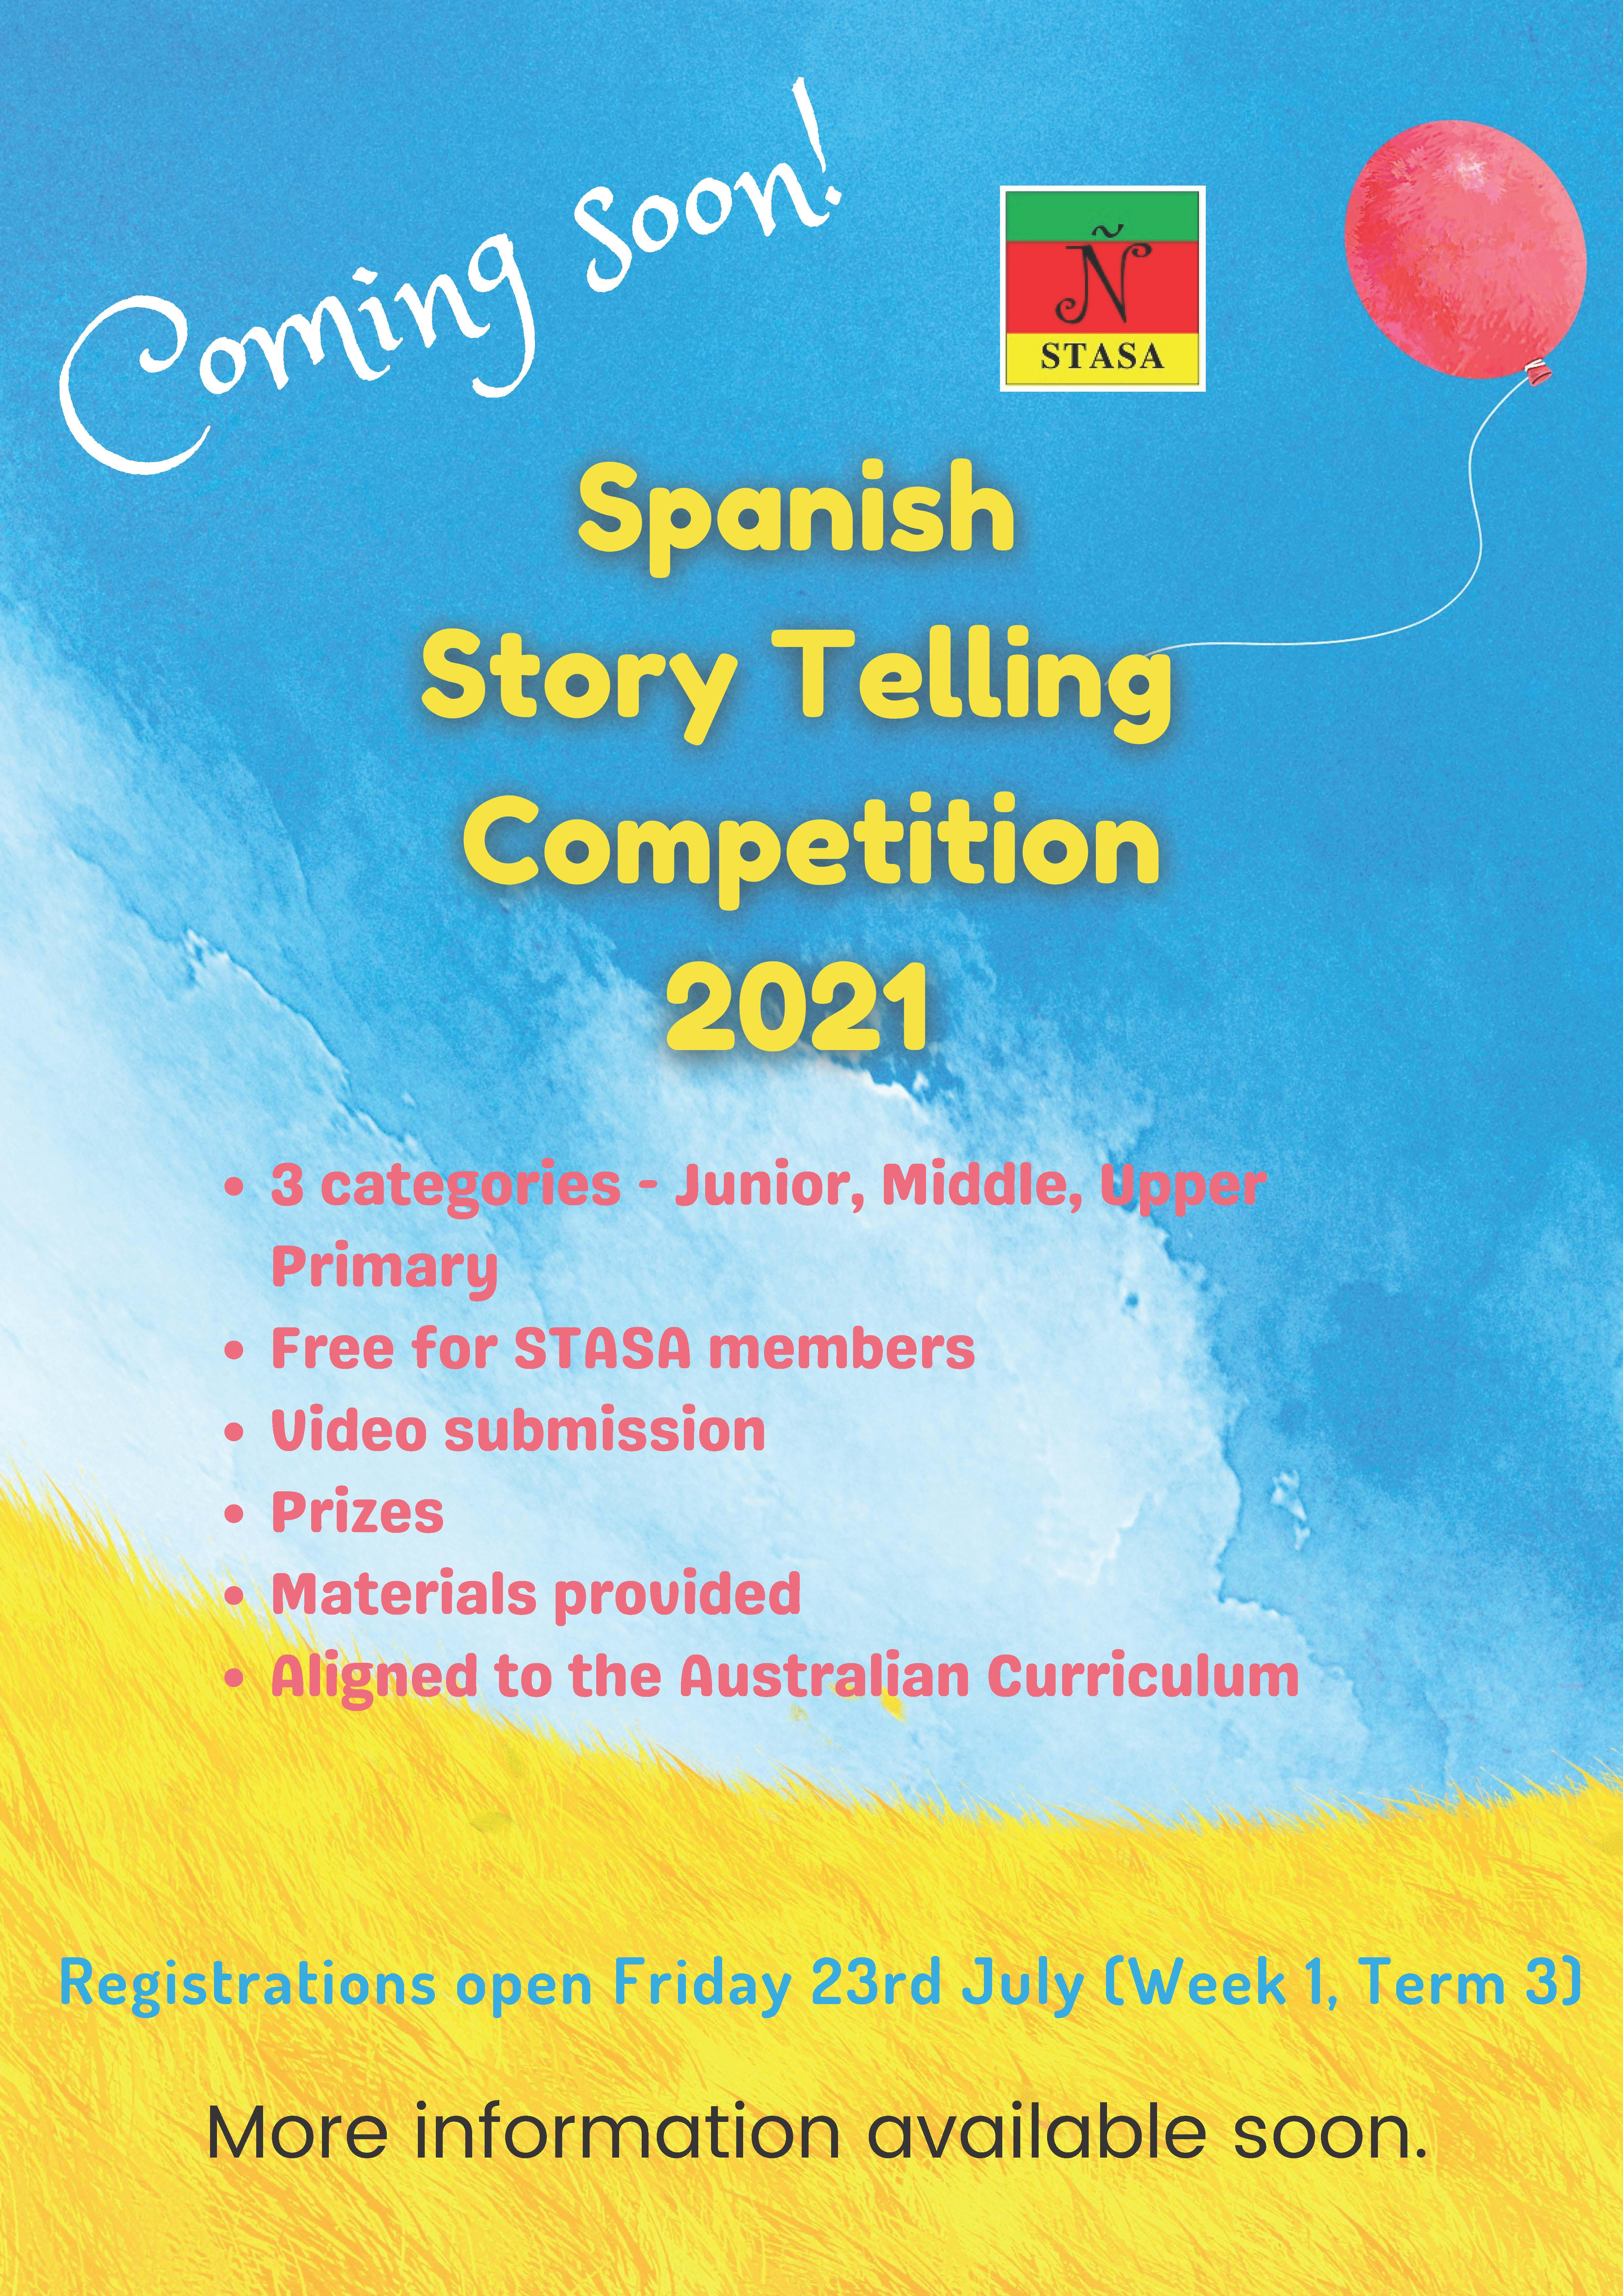 17 September: Junior Story Telling Competition